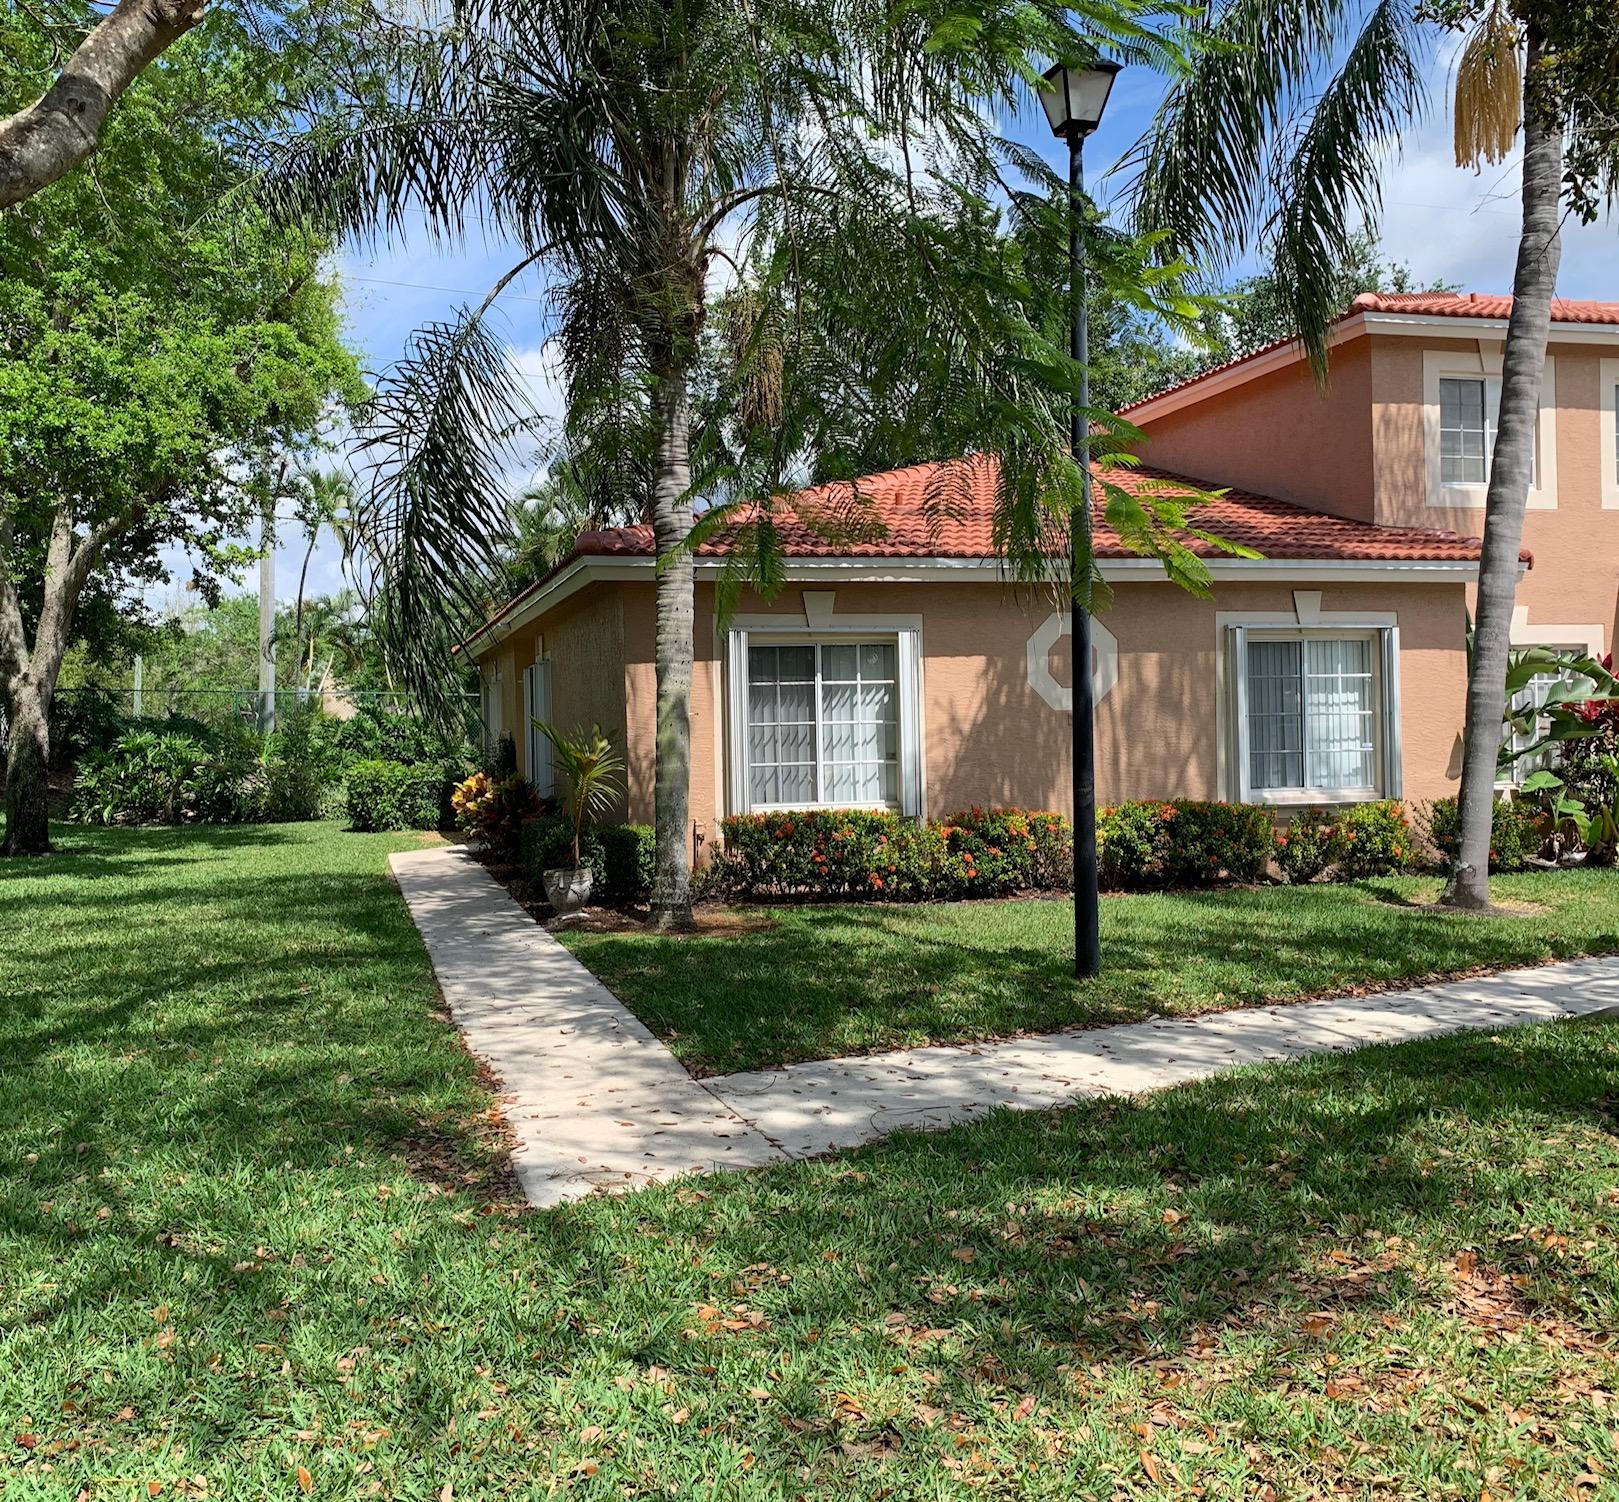 Home for sale in Santa Cruz Boynton Beach Florida